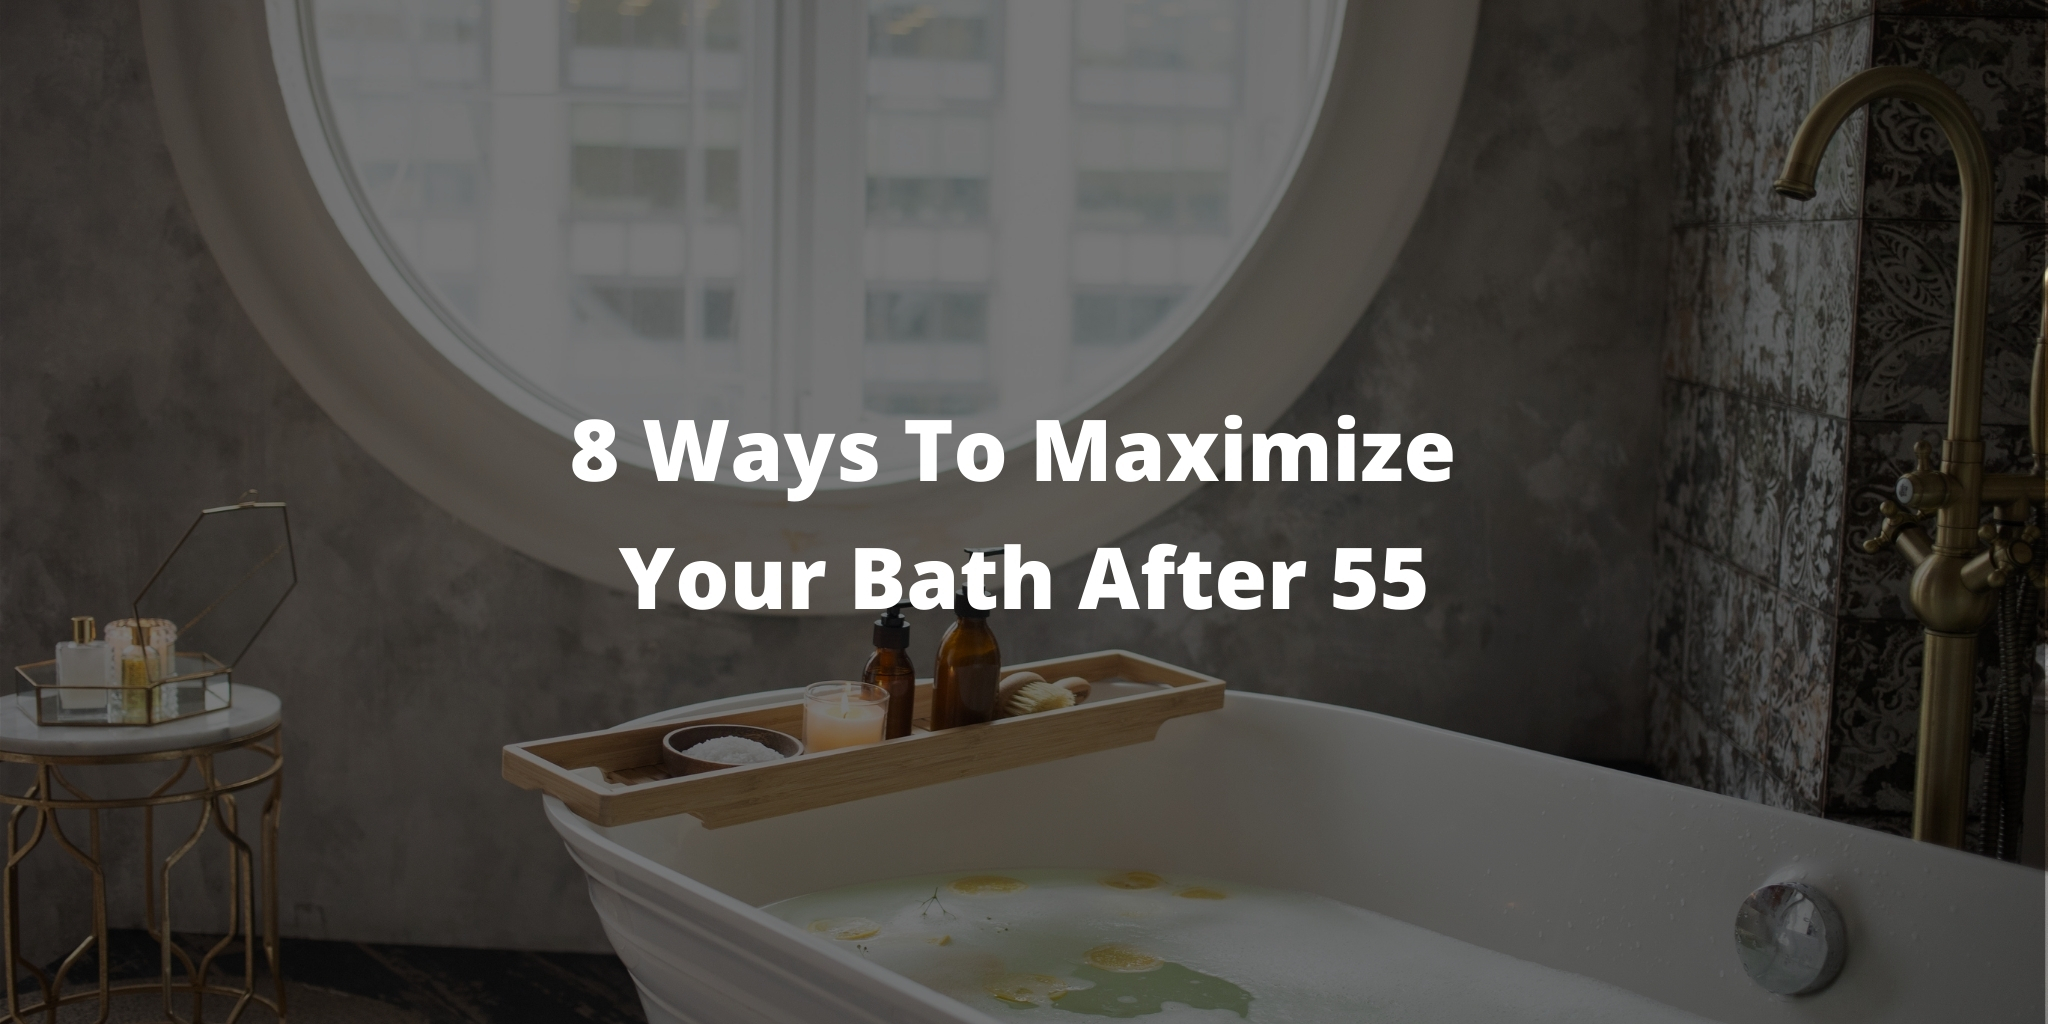 8 Ways To Maximize Your Bath After 55